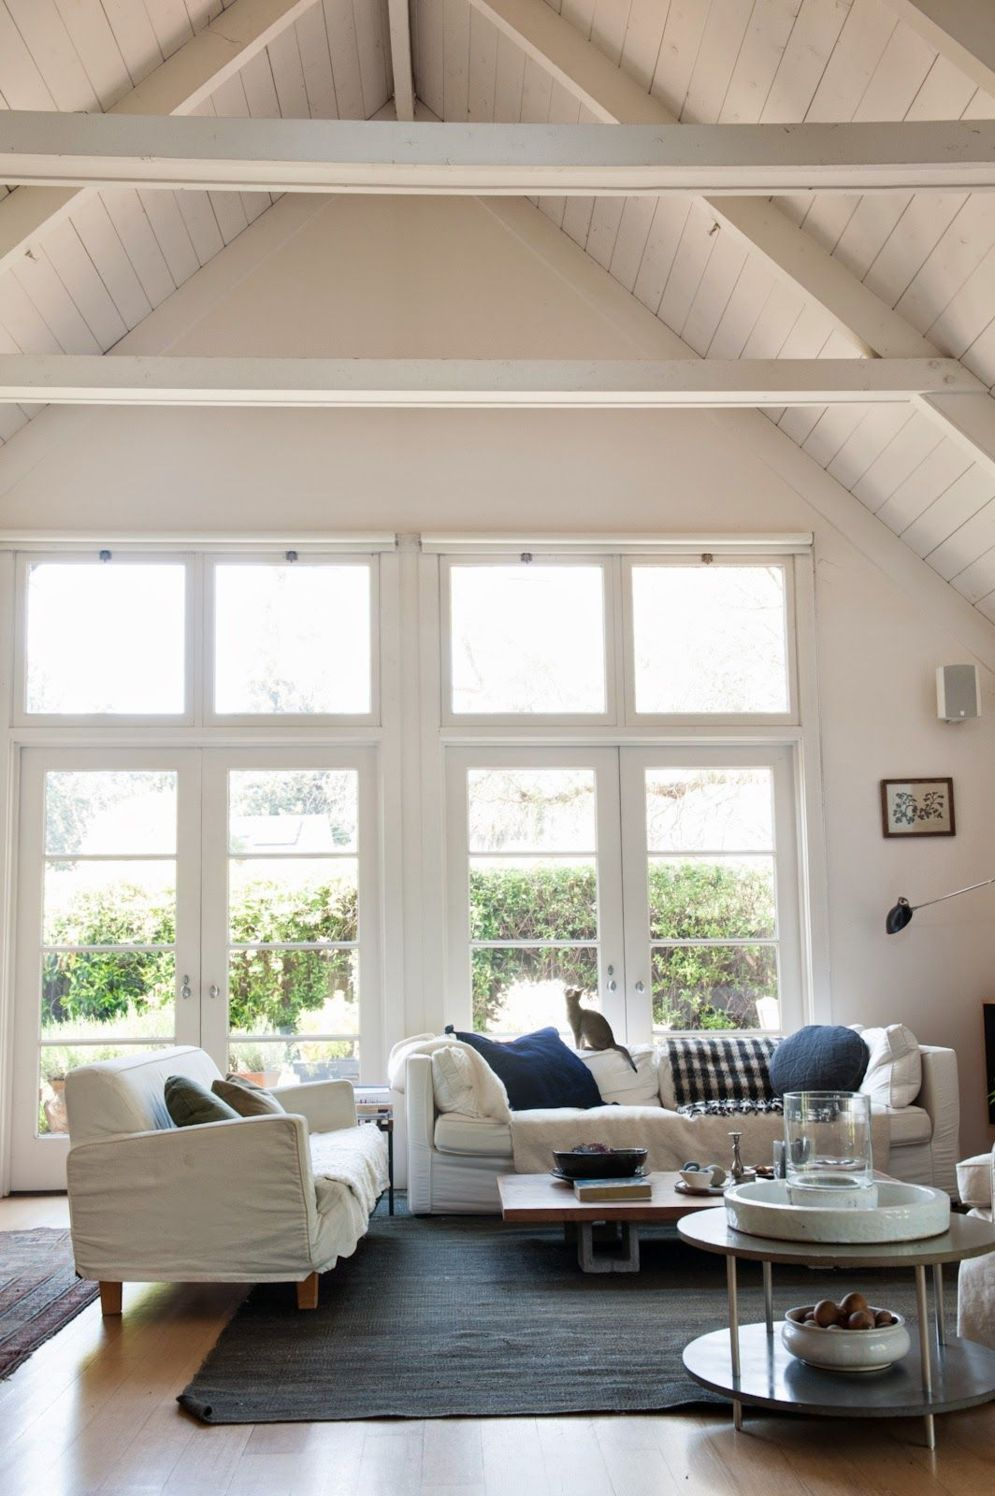 Spacious home images with vaulted ceiling showcasing grand and wonderful home design Image 38